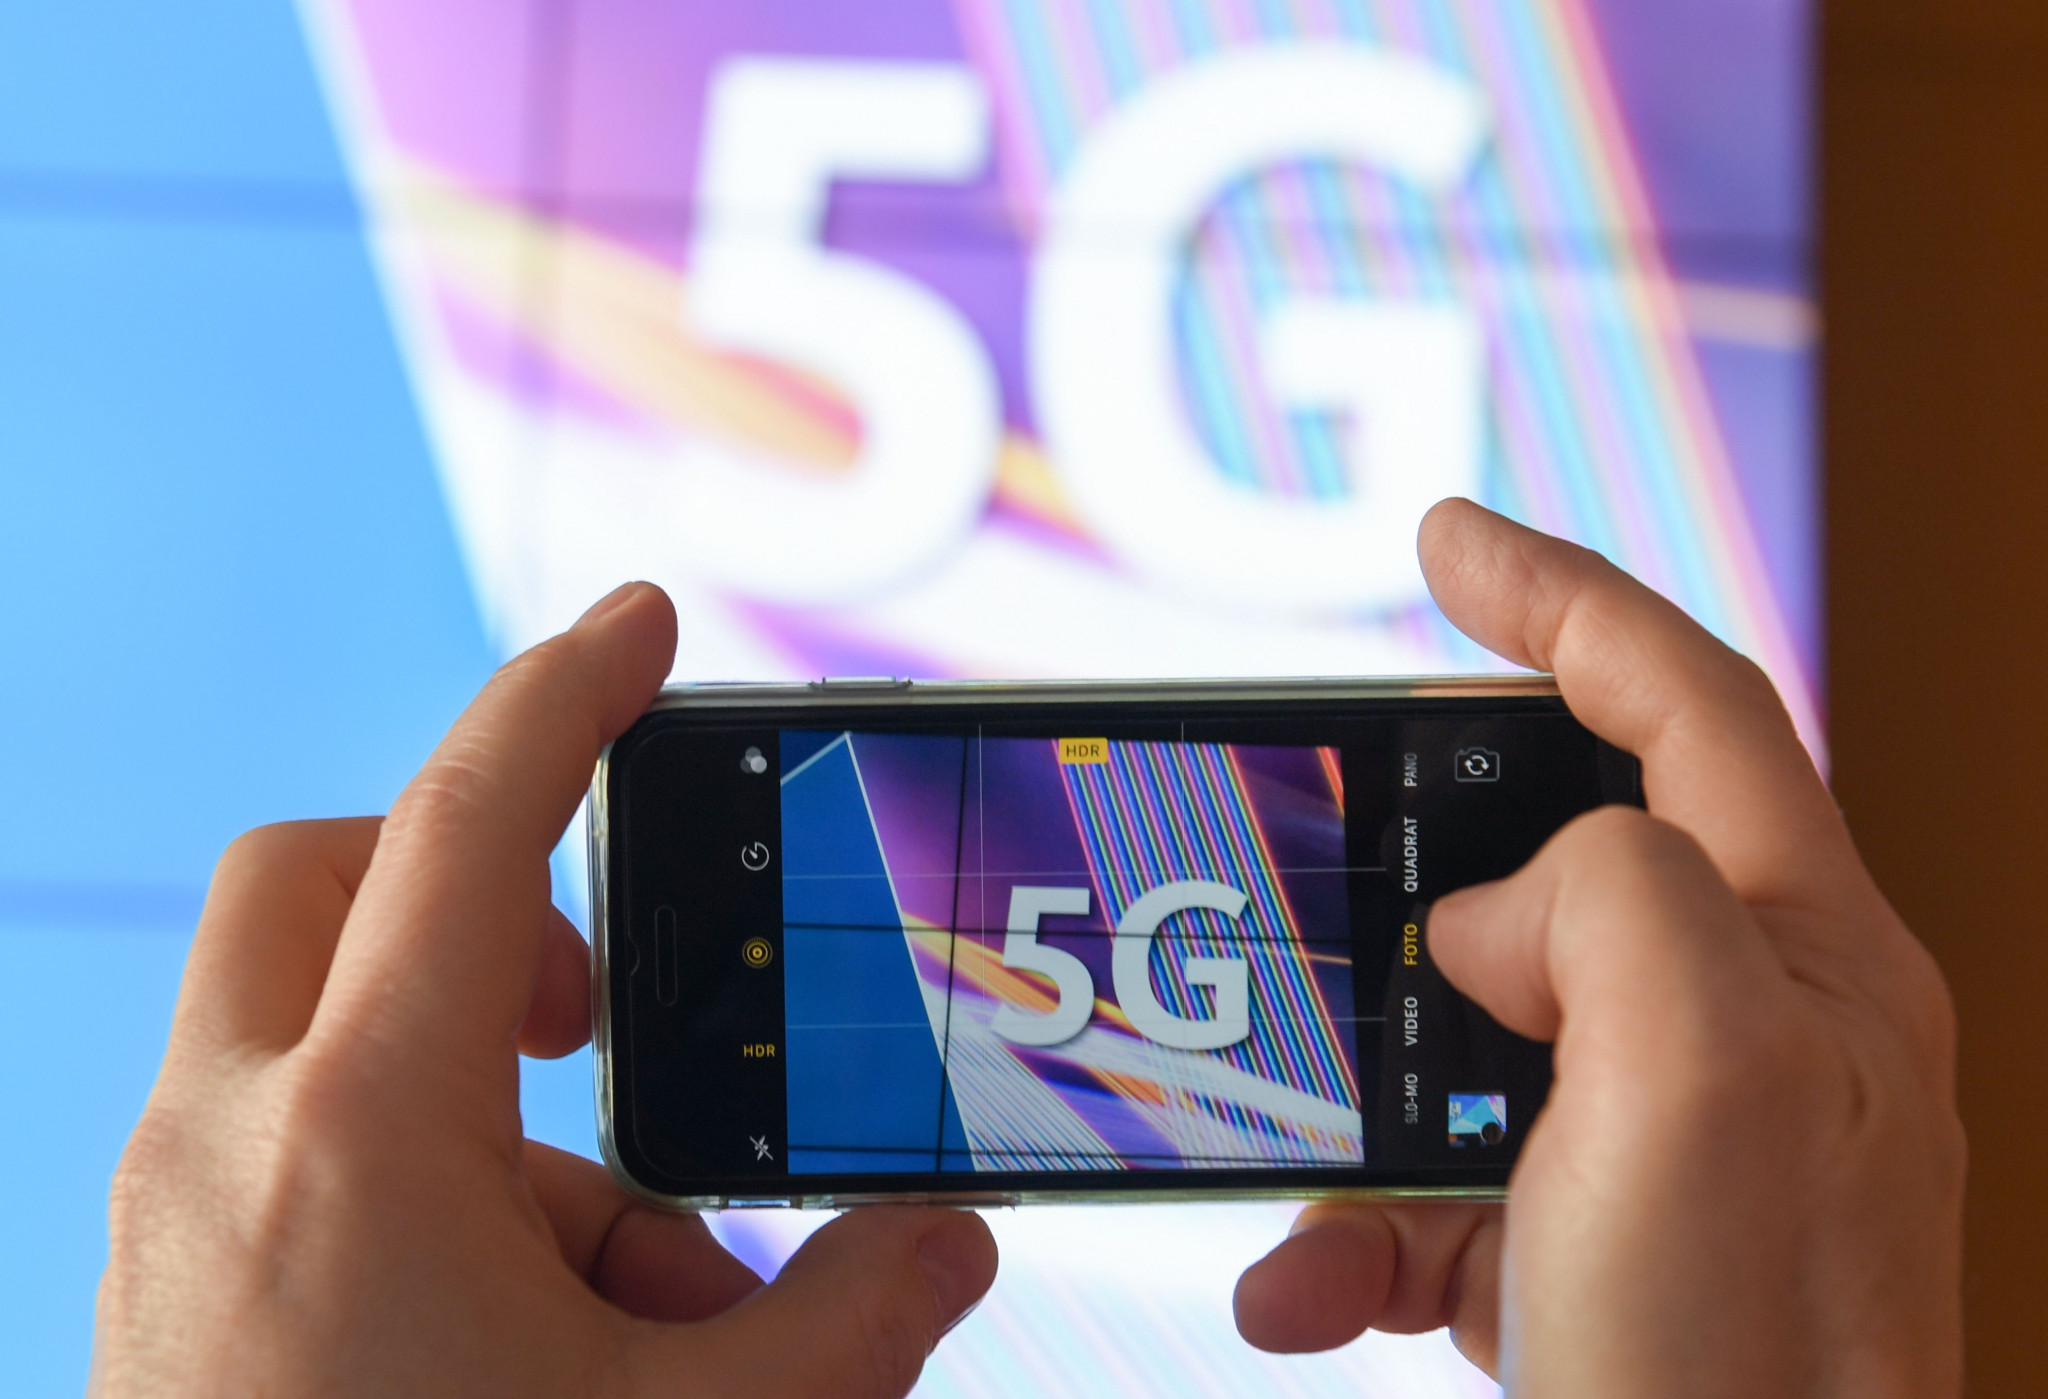 Hopes high as Beijing launches multi-billion dollar plan to build 5G network in time for 2022 Winter Olympics